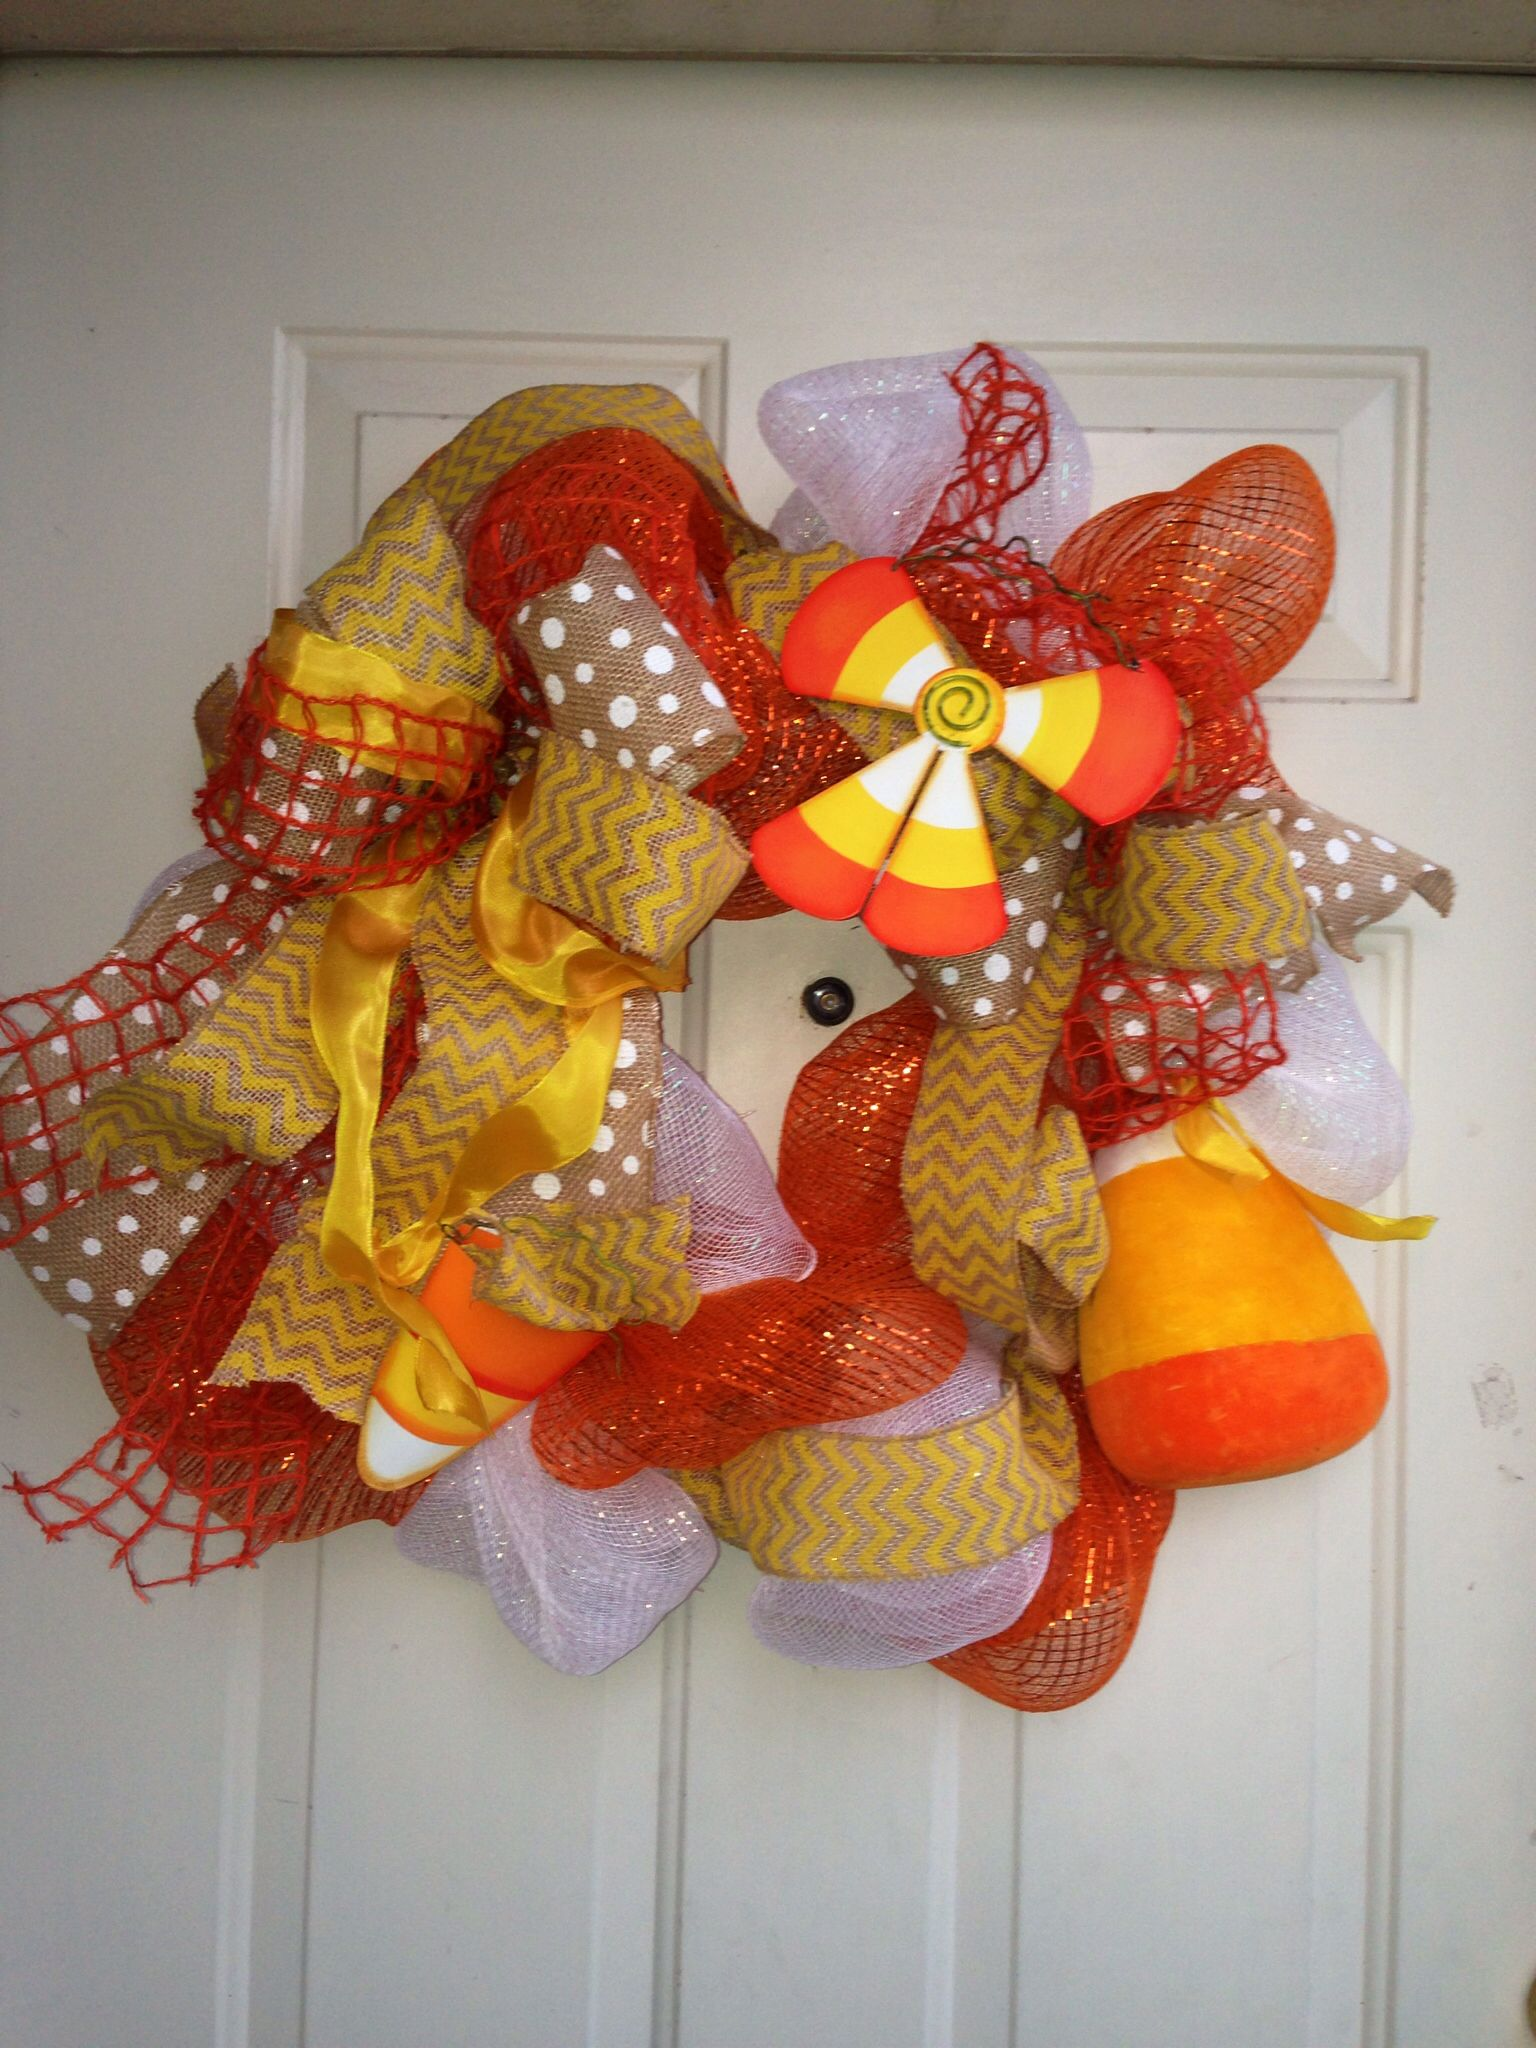 A candy corn and chevron theme party isn't complete wo a wreath!